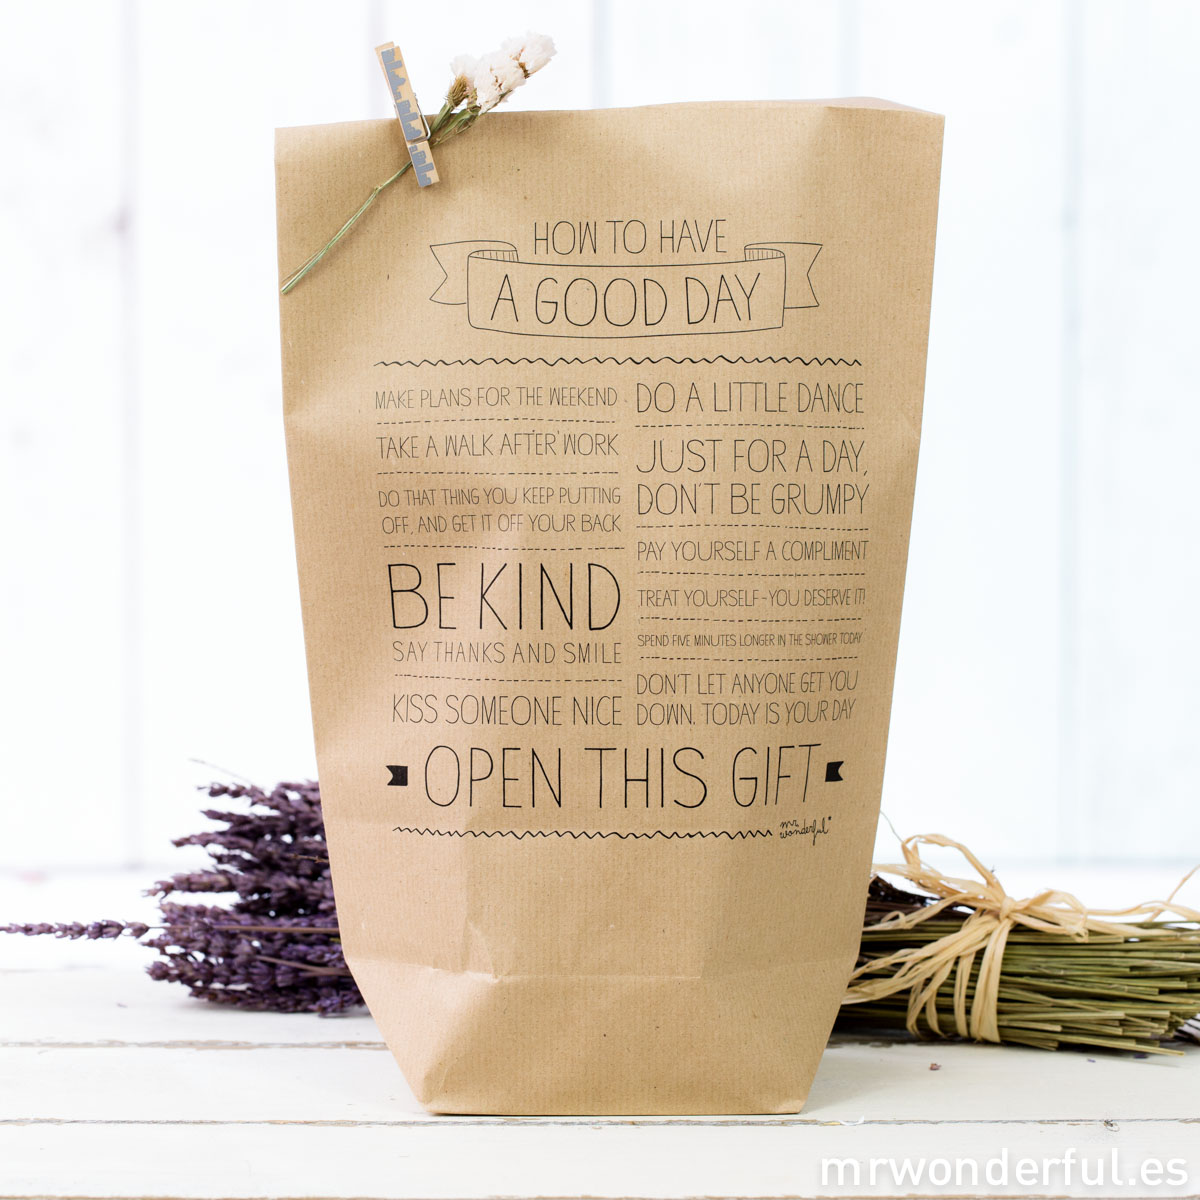 mrwonderful_kraft28_bolsa-kraft_how-have-good-day_ing-2